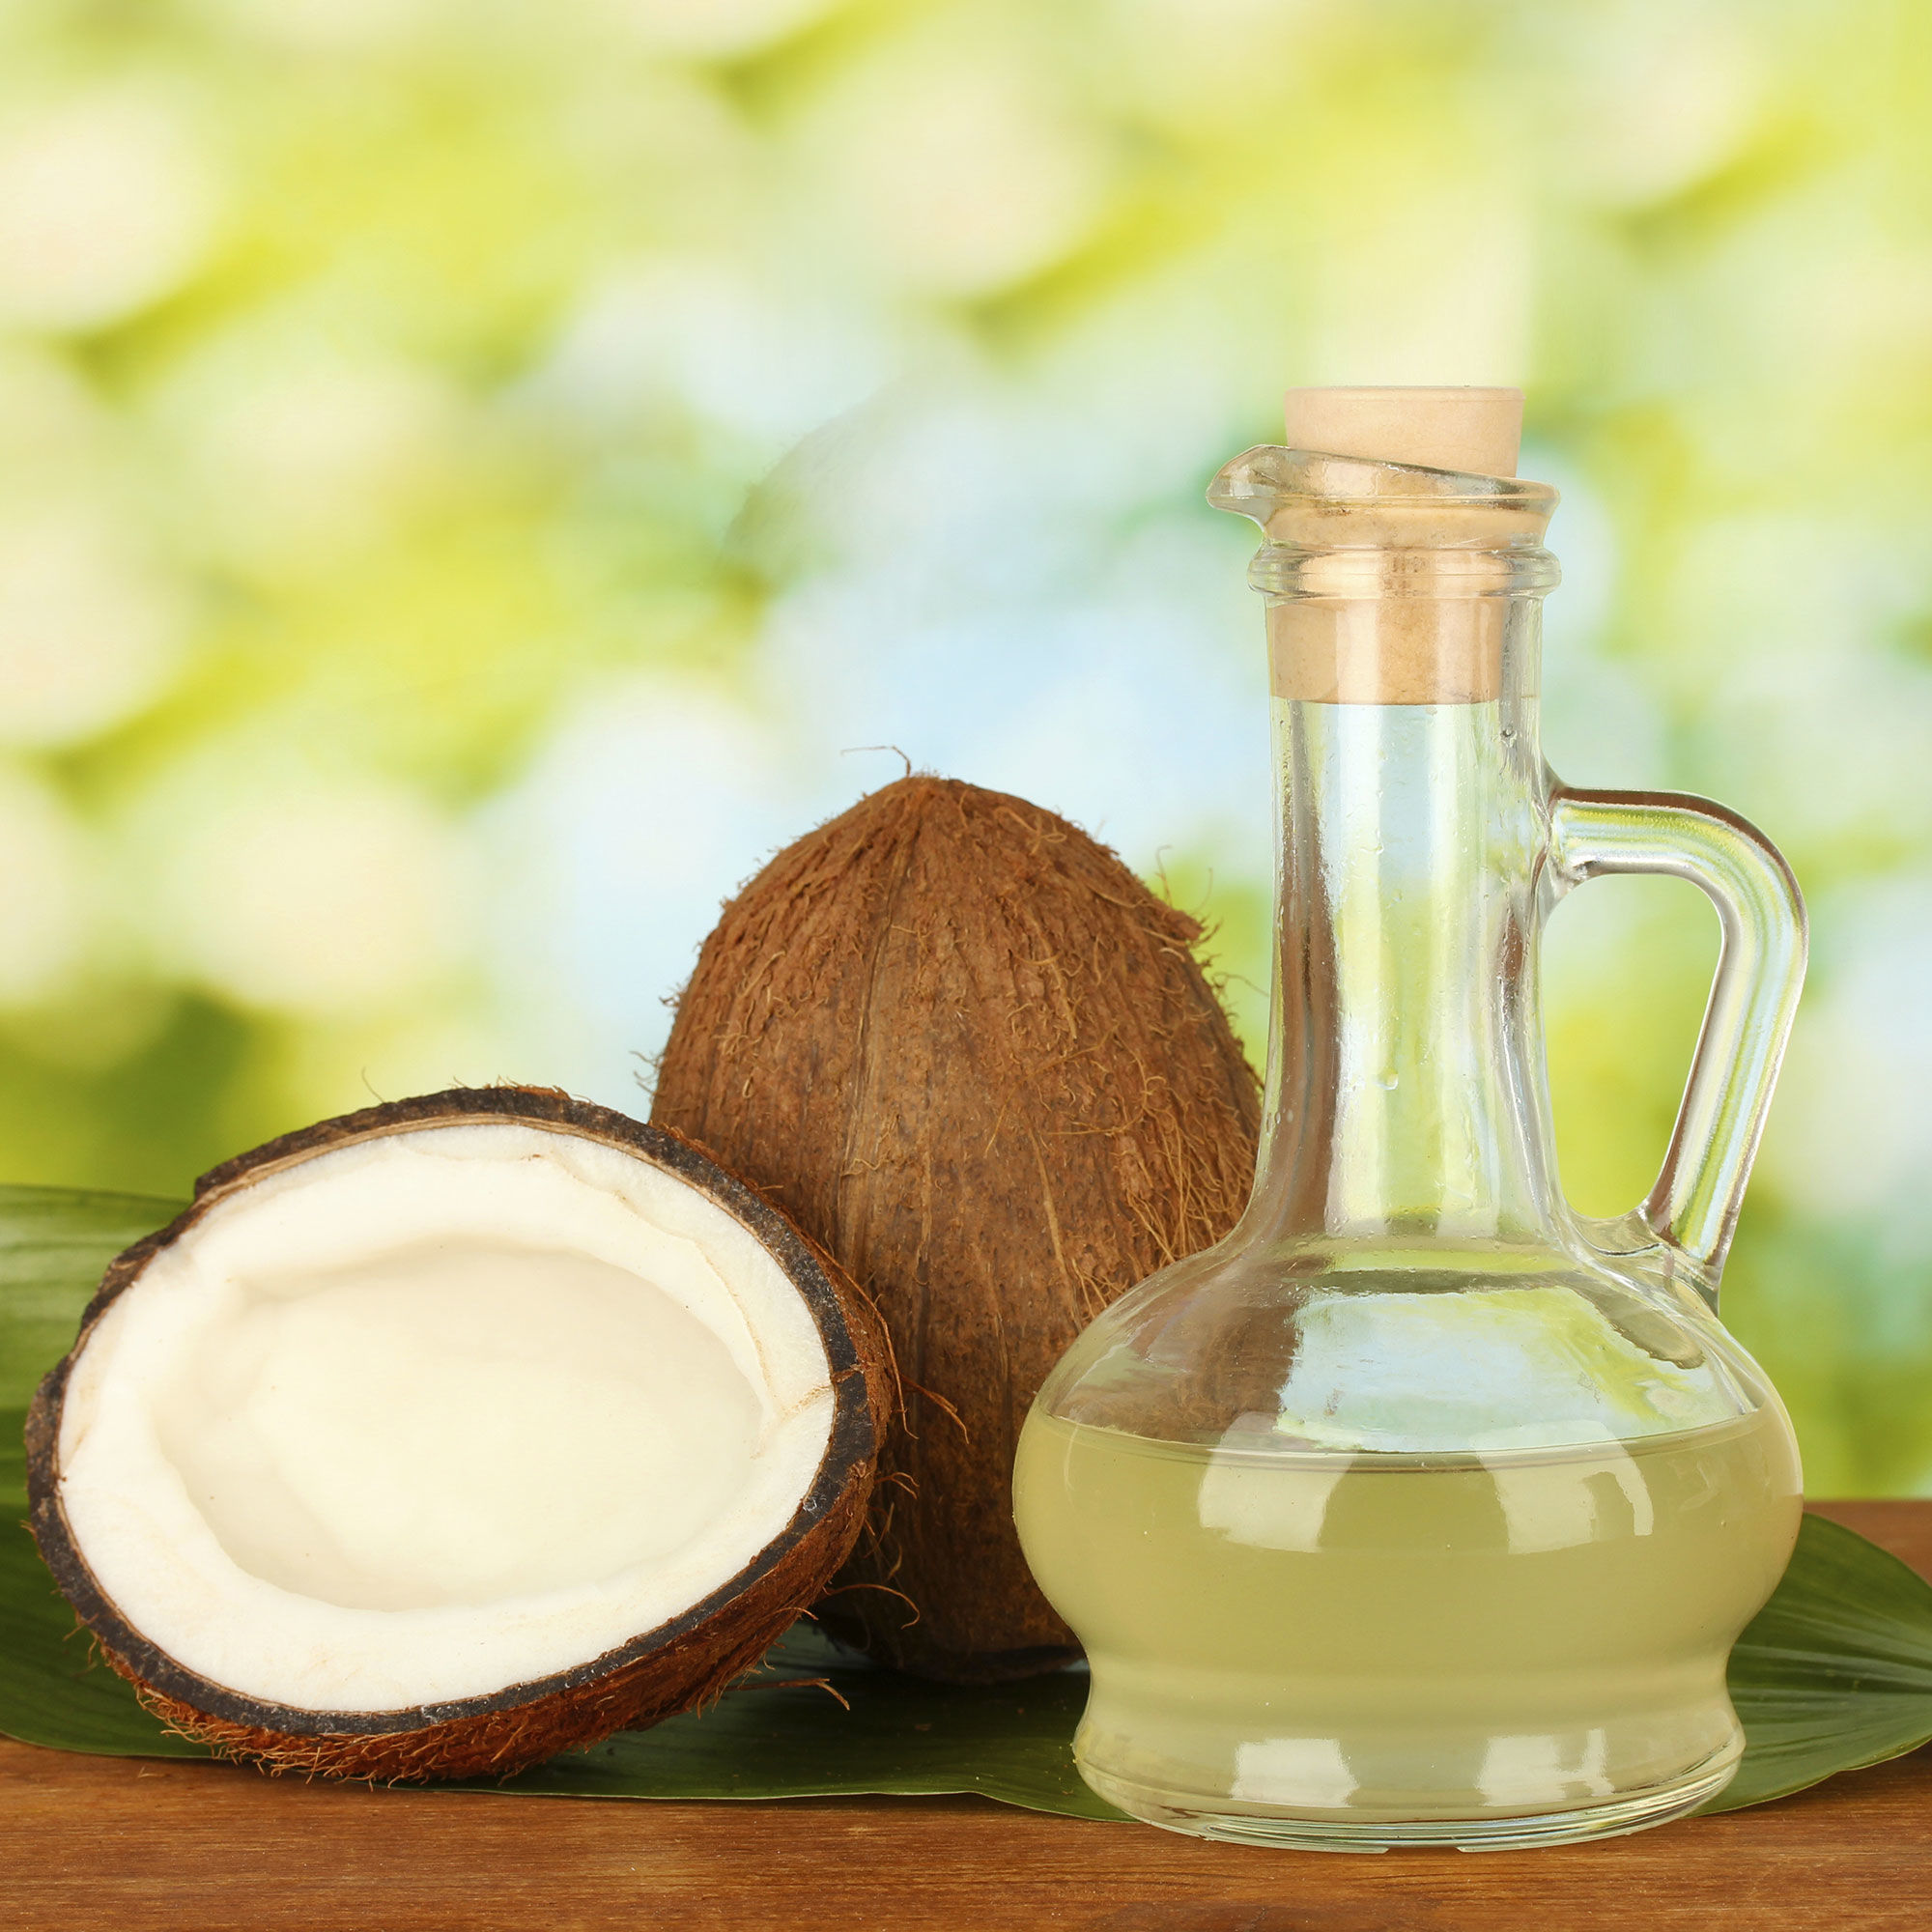 Americans Are Over Coconut Oil - Here's Why